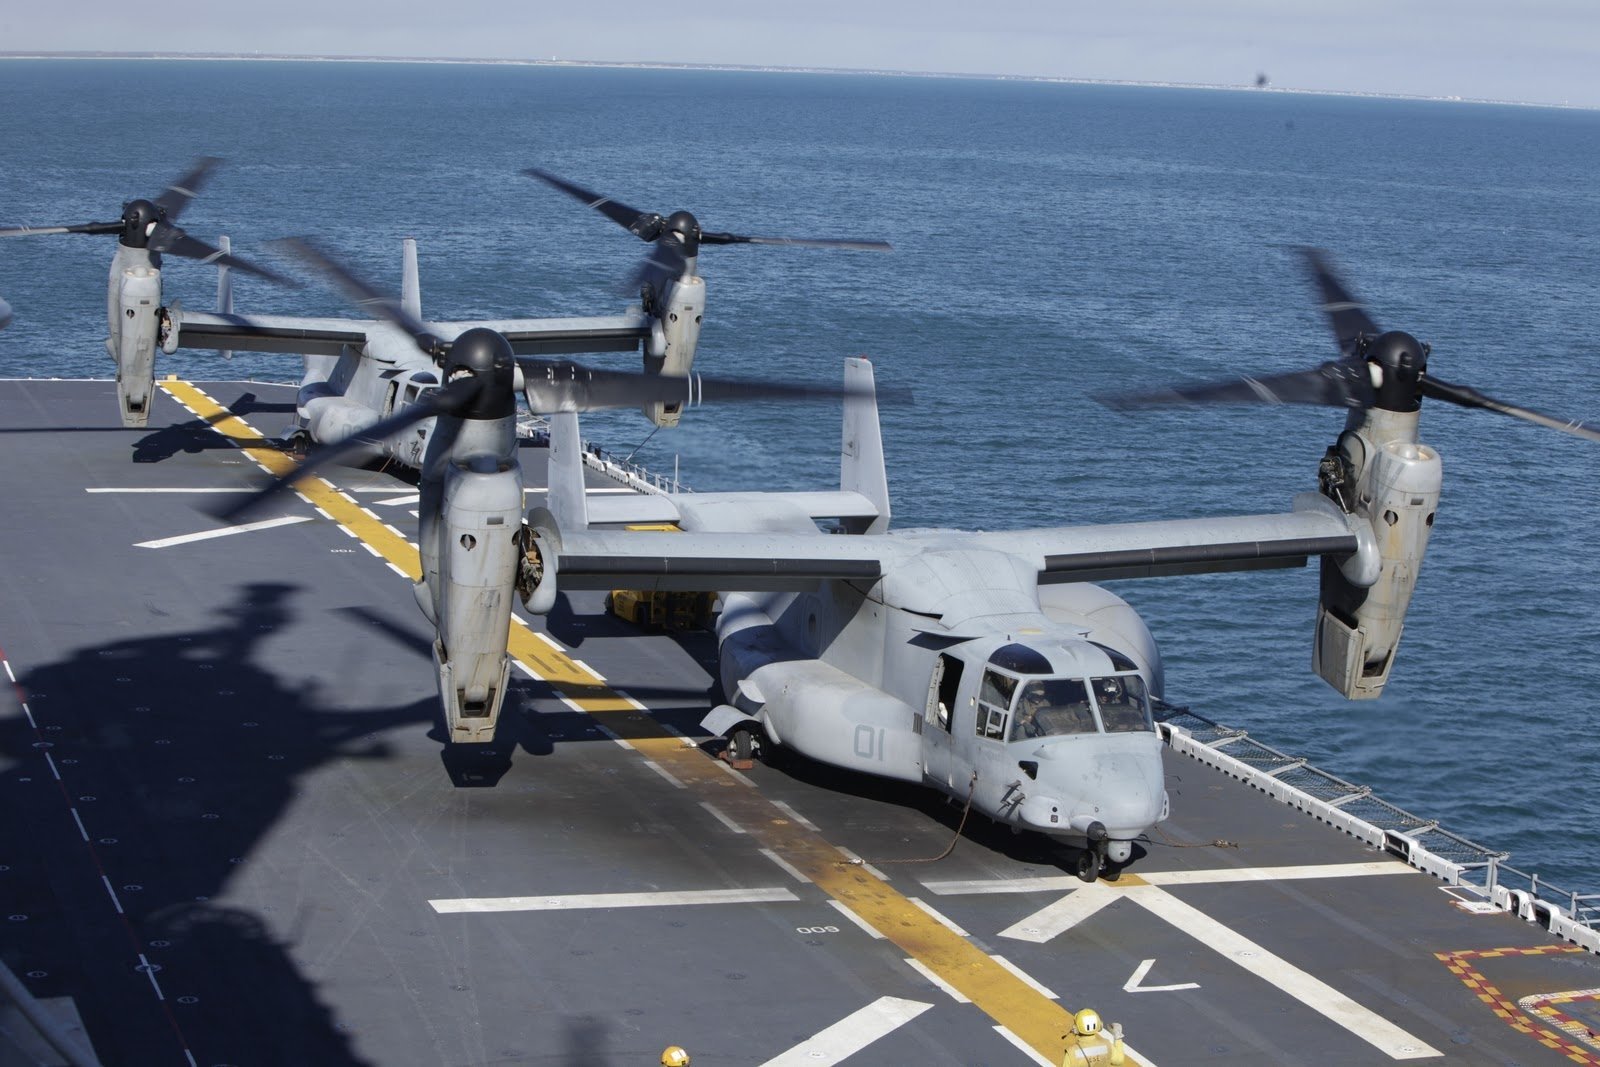 bell boeing v-22 osprey wallpaper and background | 1600x1067 | id